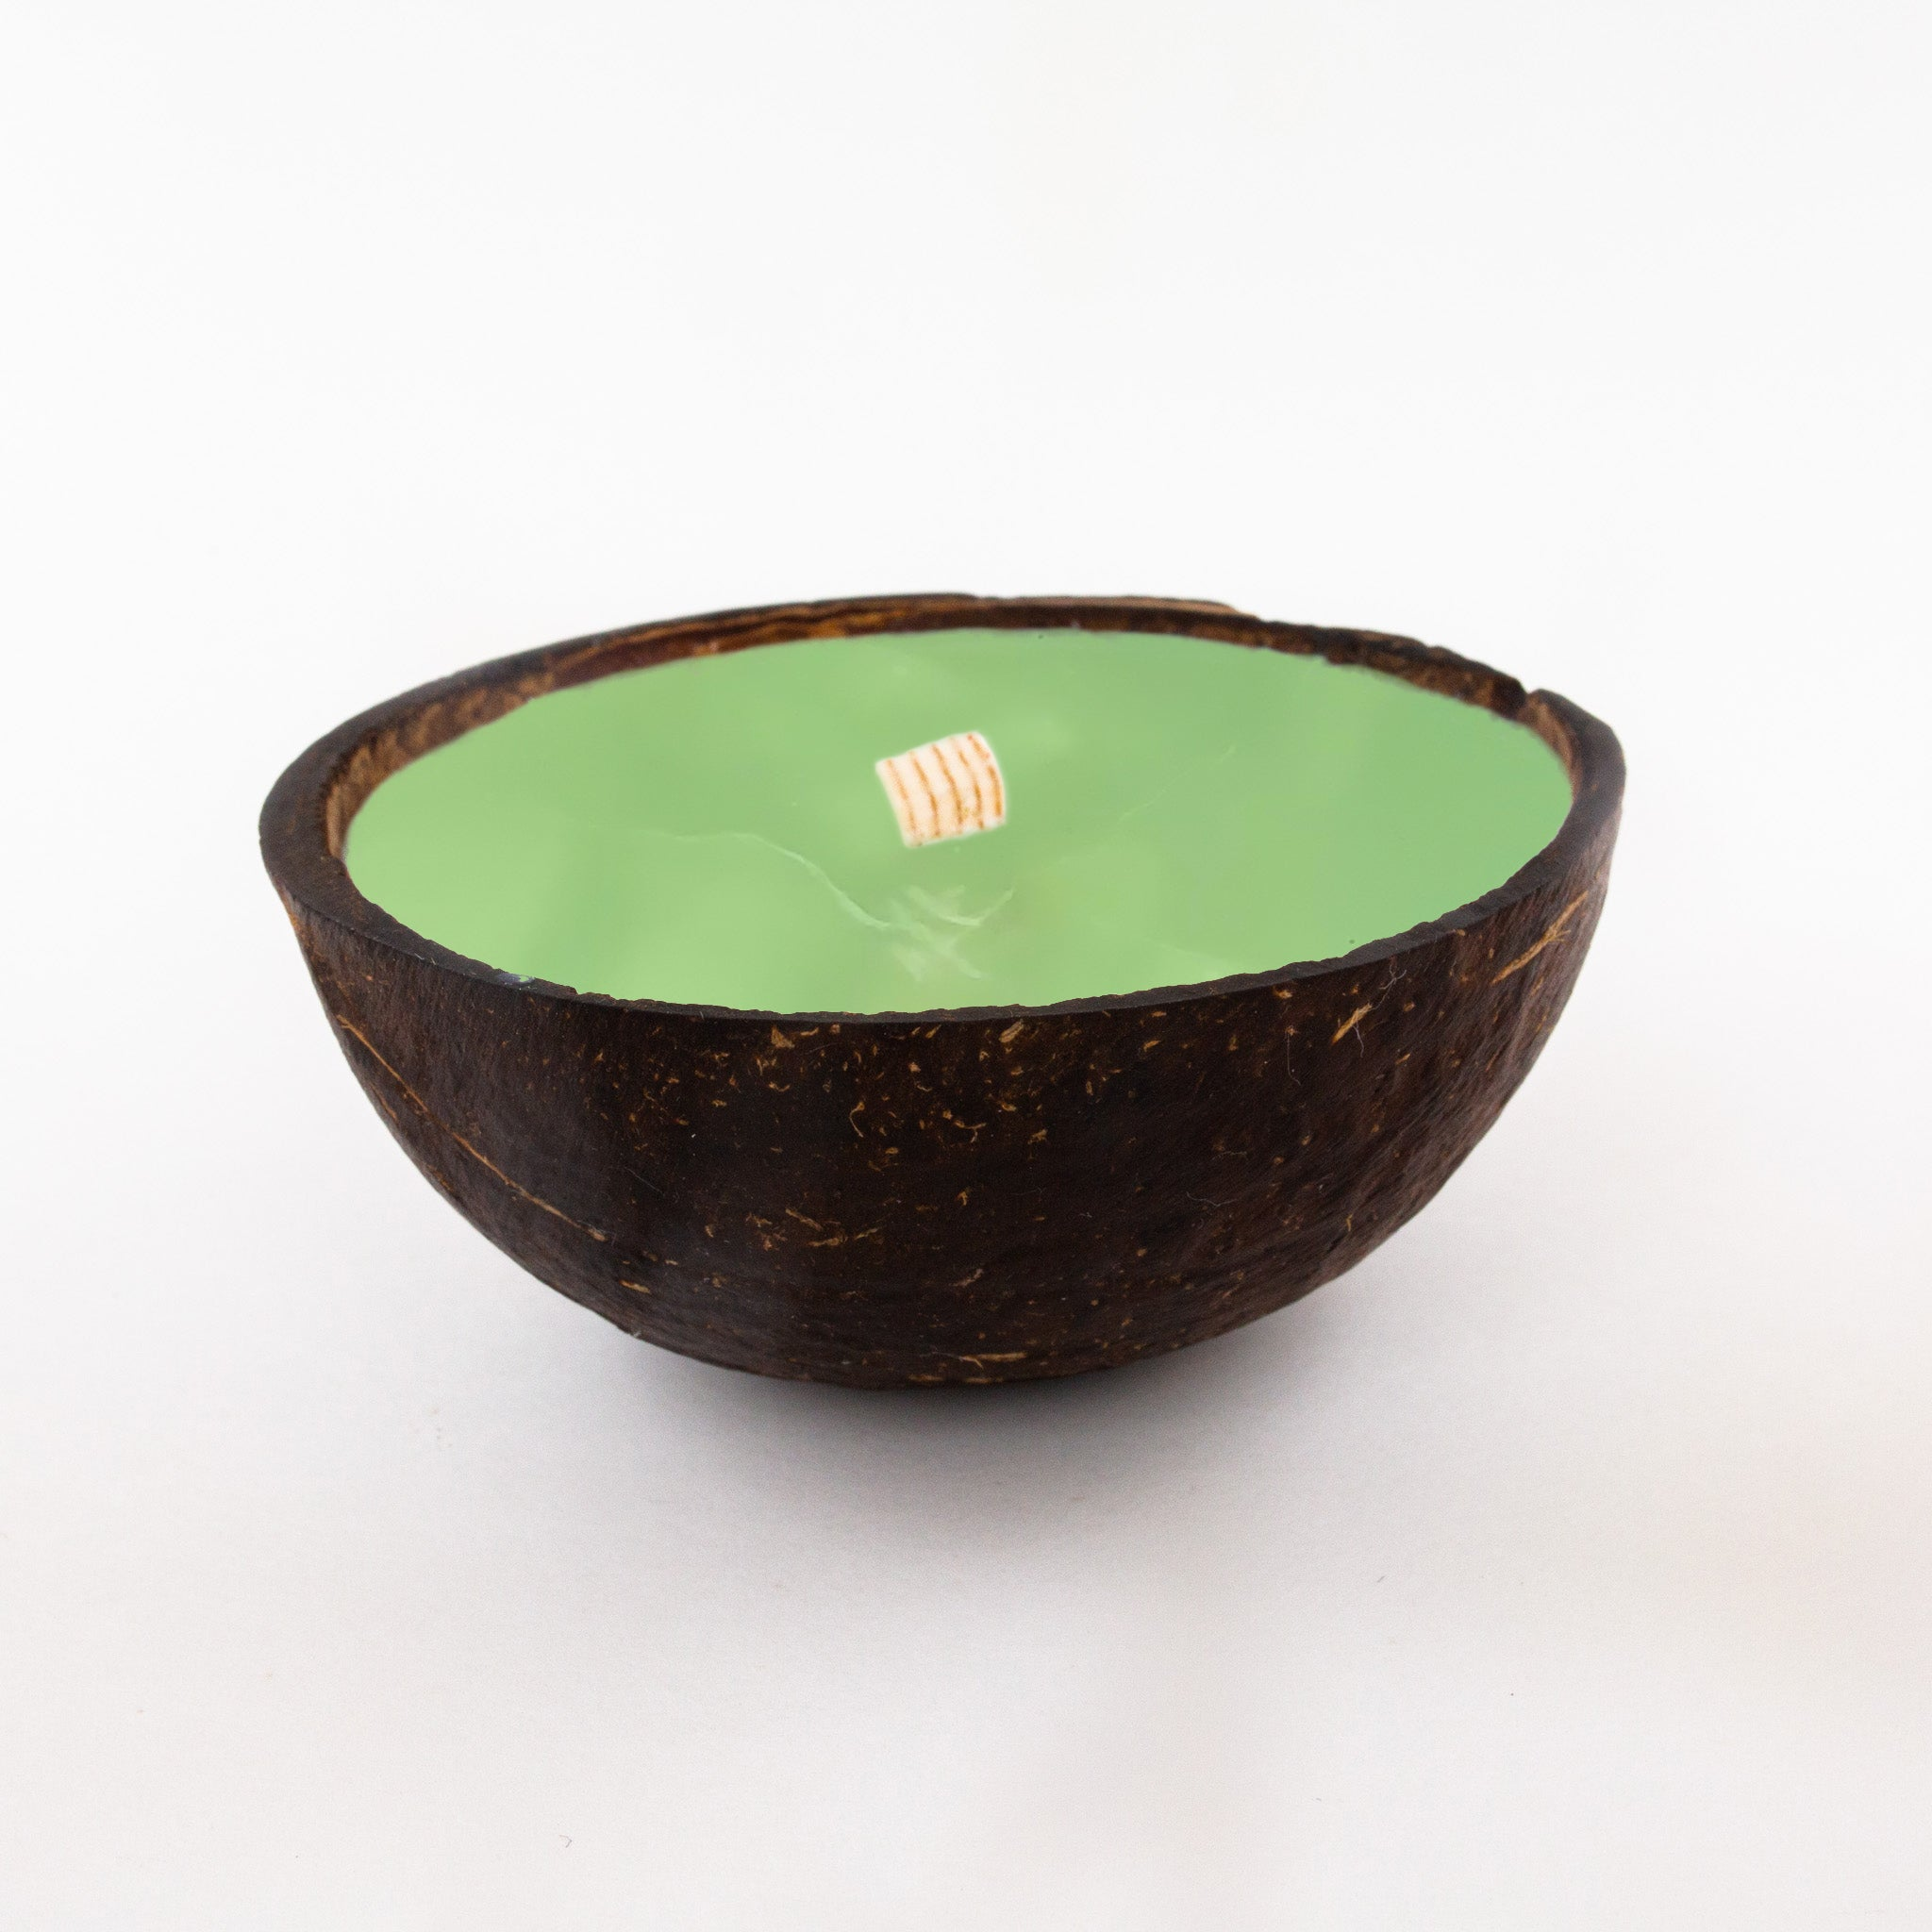 Half Coconut Candle - Margarita